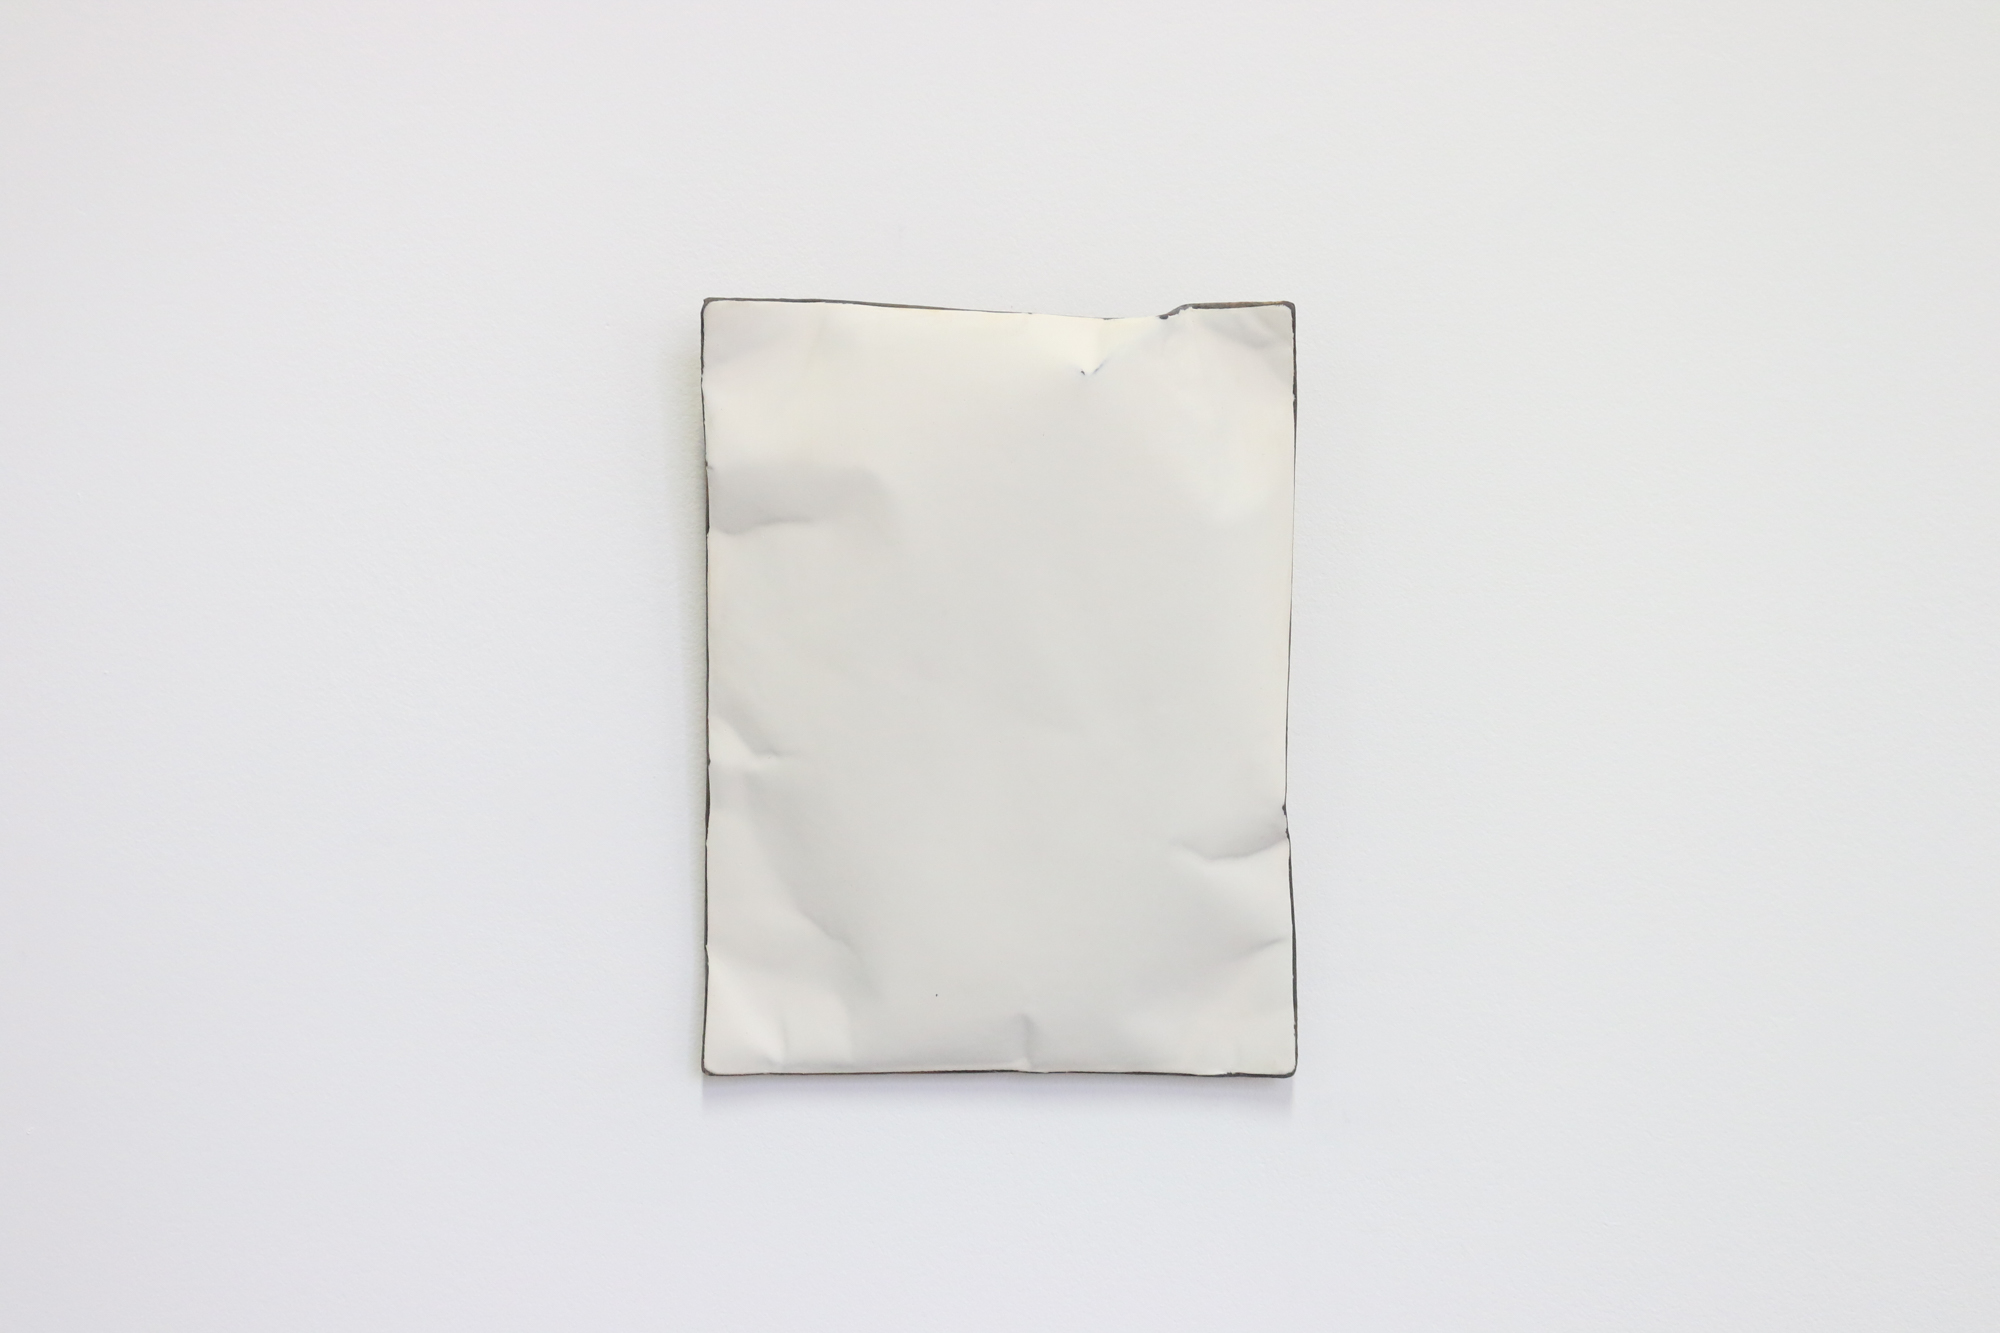 Johan De Wit, Untitled, 2019, Acrylic, Marble, Resin on Paper, 26x20x6 cm - white, Affinity Art.jpg